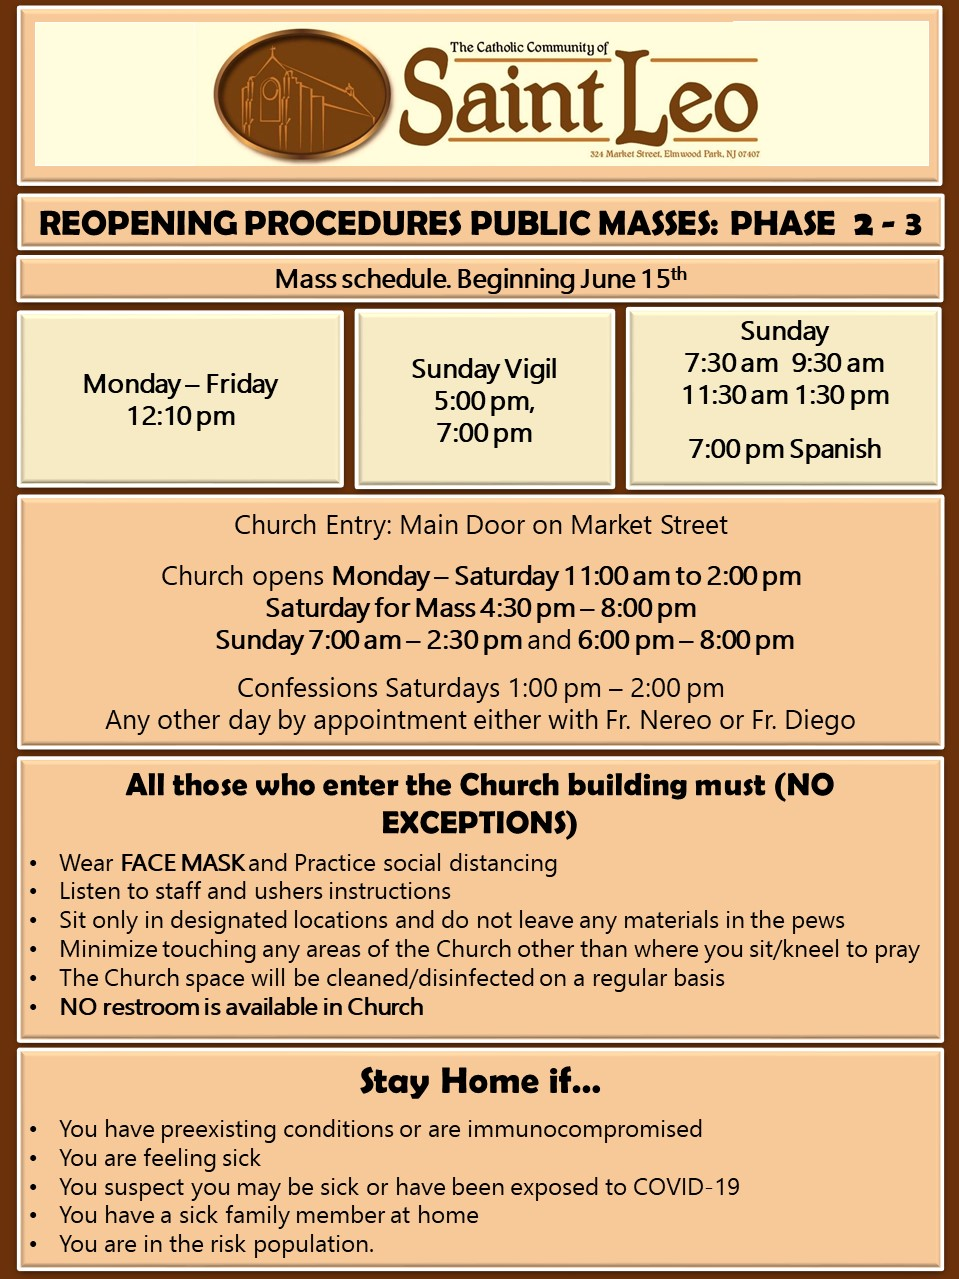 REOPENING CHURCH FOR MASSES JUNE 15